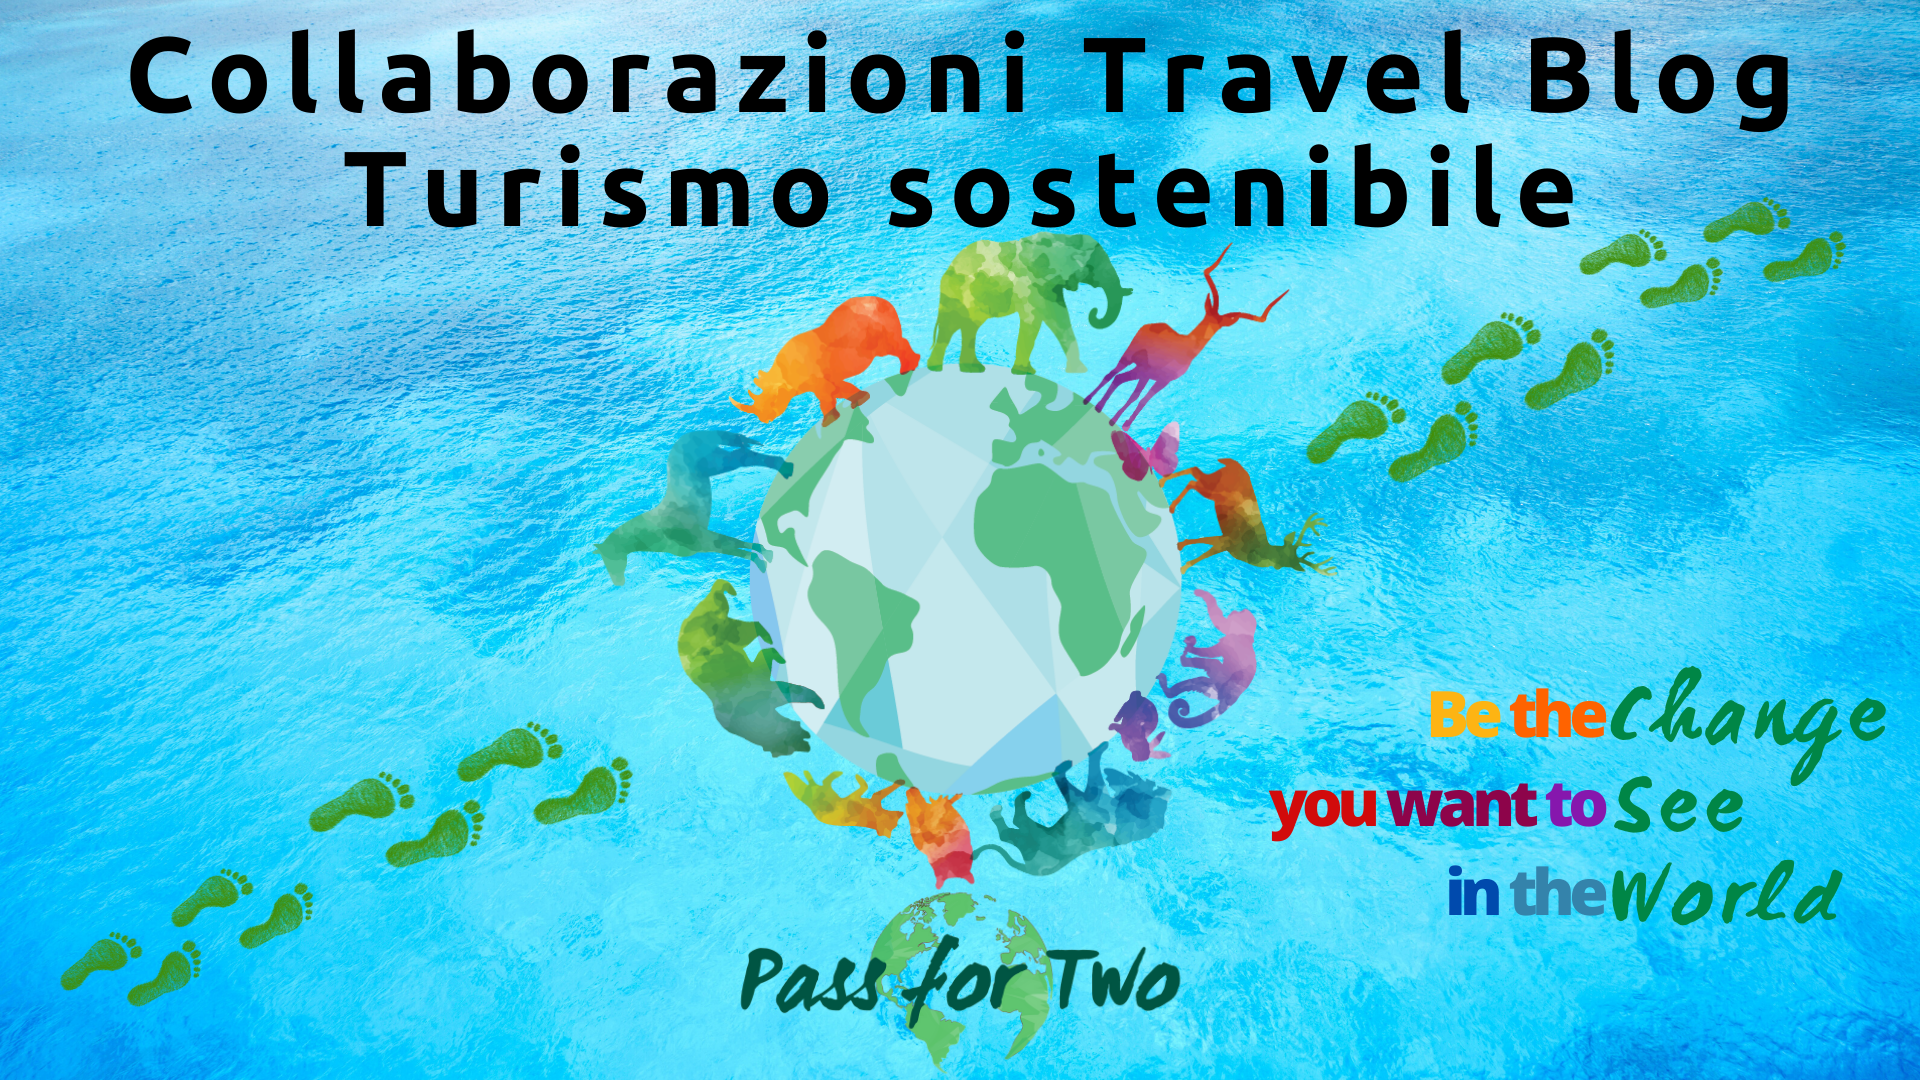 Collaborazioni Travel Blog